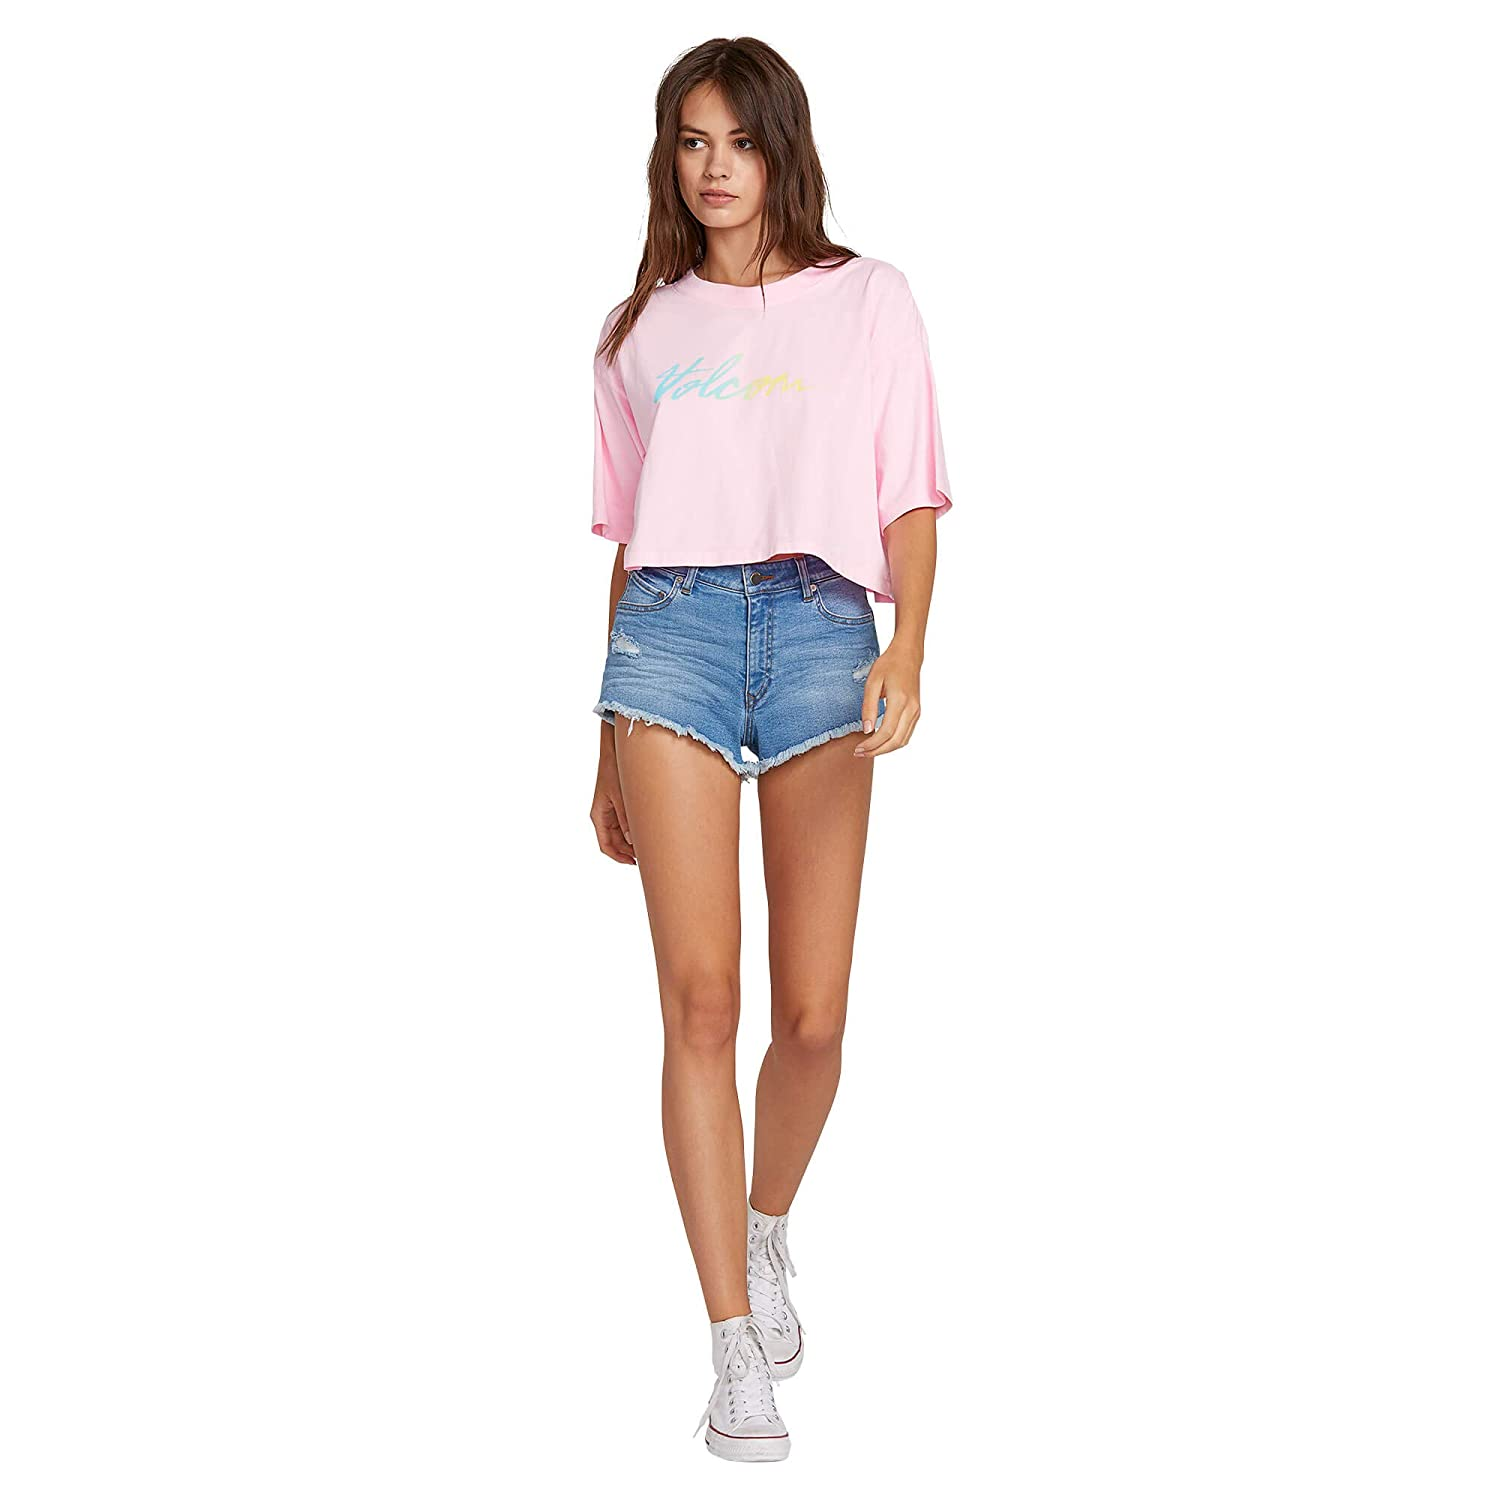 Volcom Womens Neon and on Short Sleeve Cropped Tee